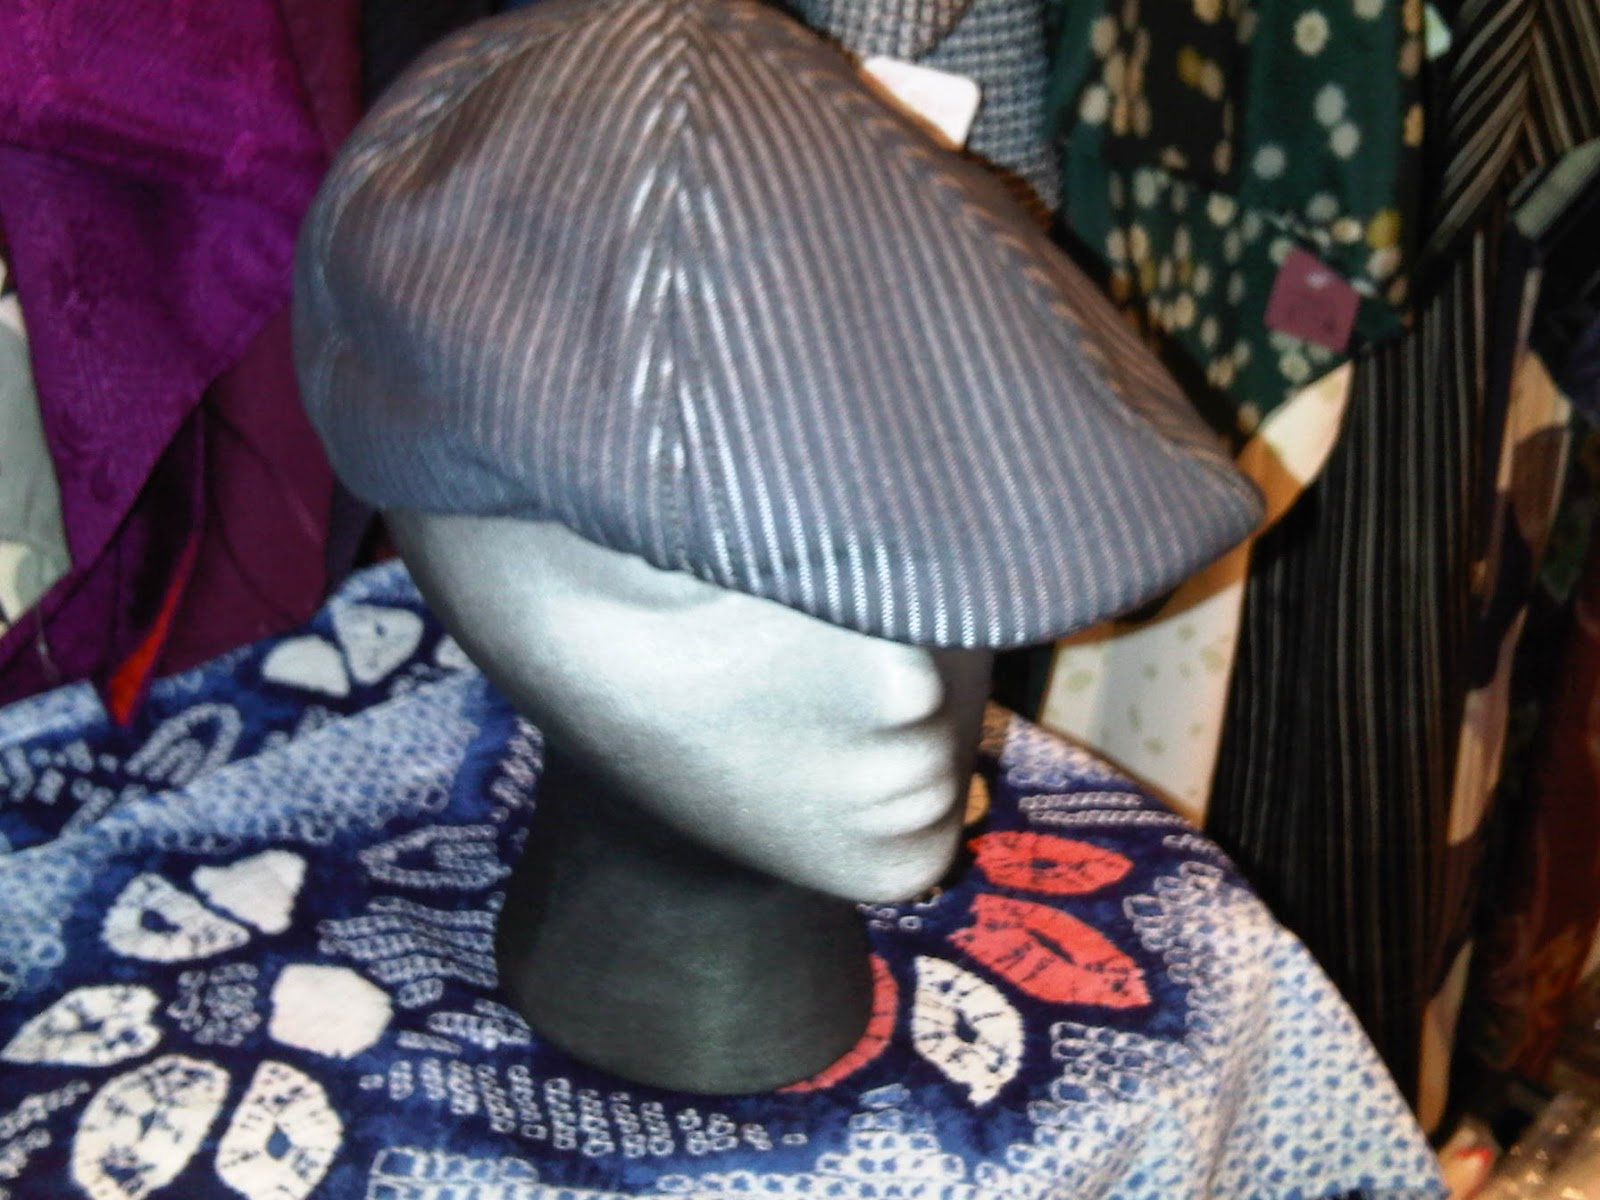 Hunting or Driver Duckbill Cap from The Hat House NY 347-640-4048